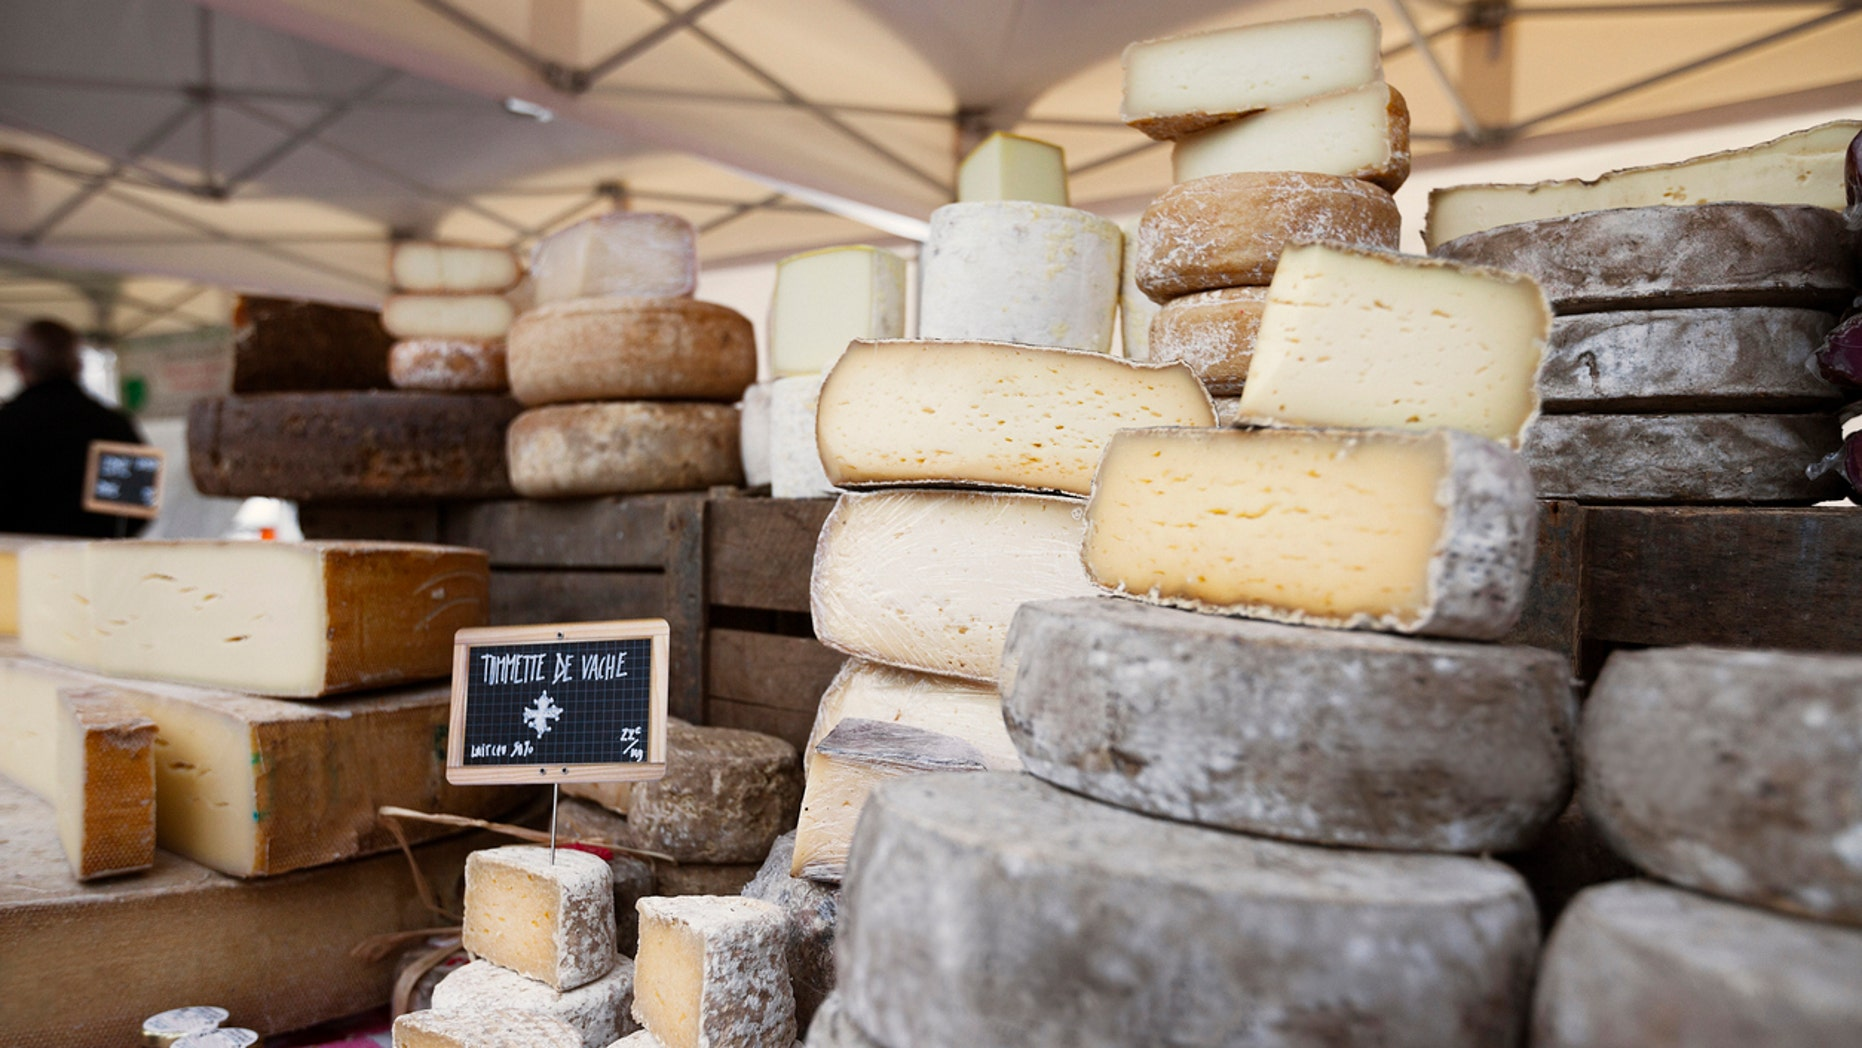 The Big Cheese Festival left fans cheesed-off after not fulfilling promises to have a wide-selection of cheese and wine pairings.